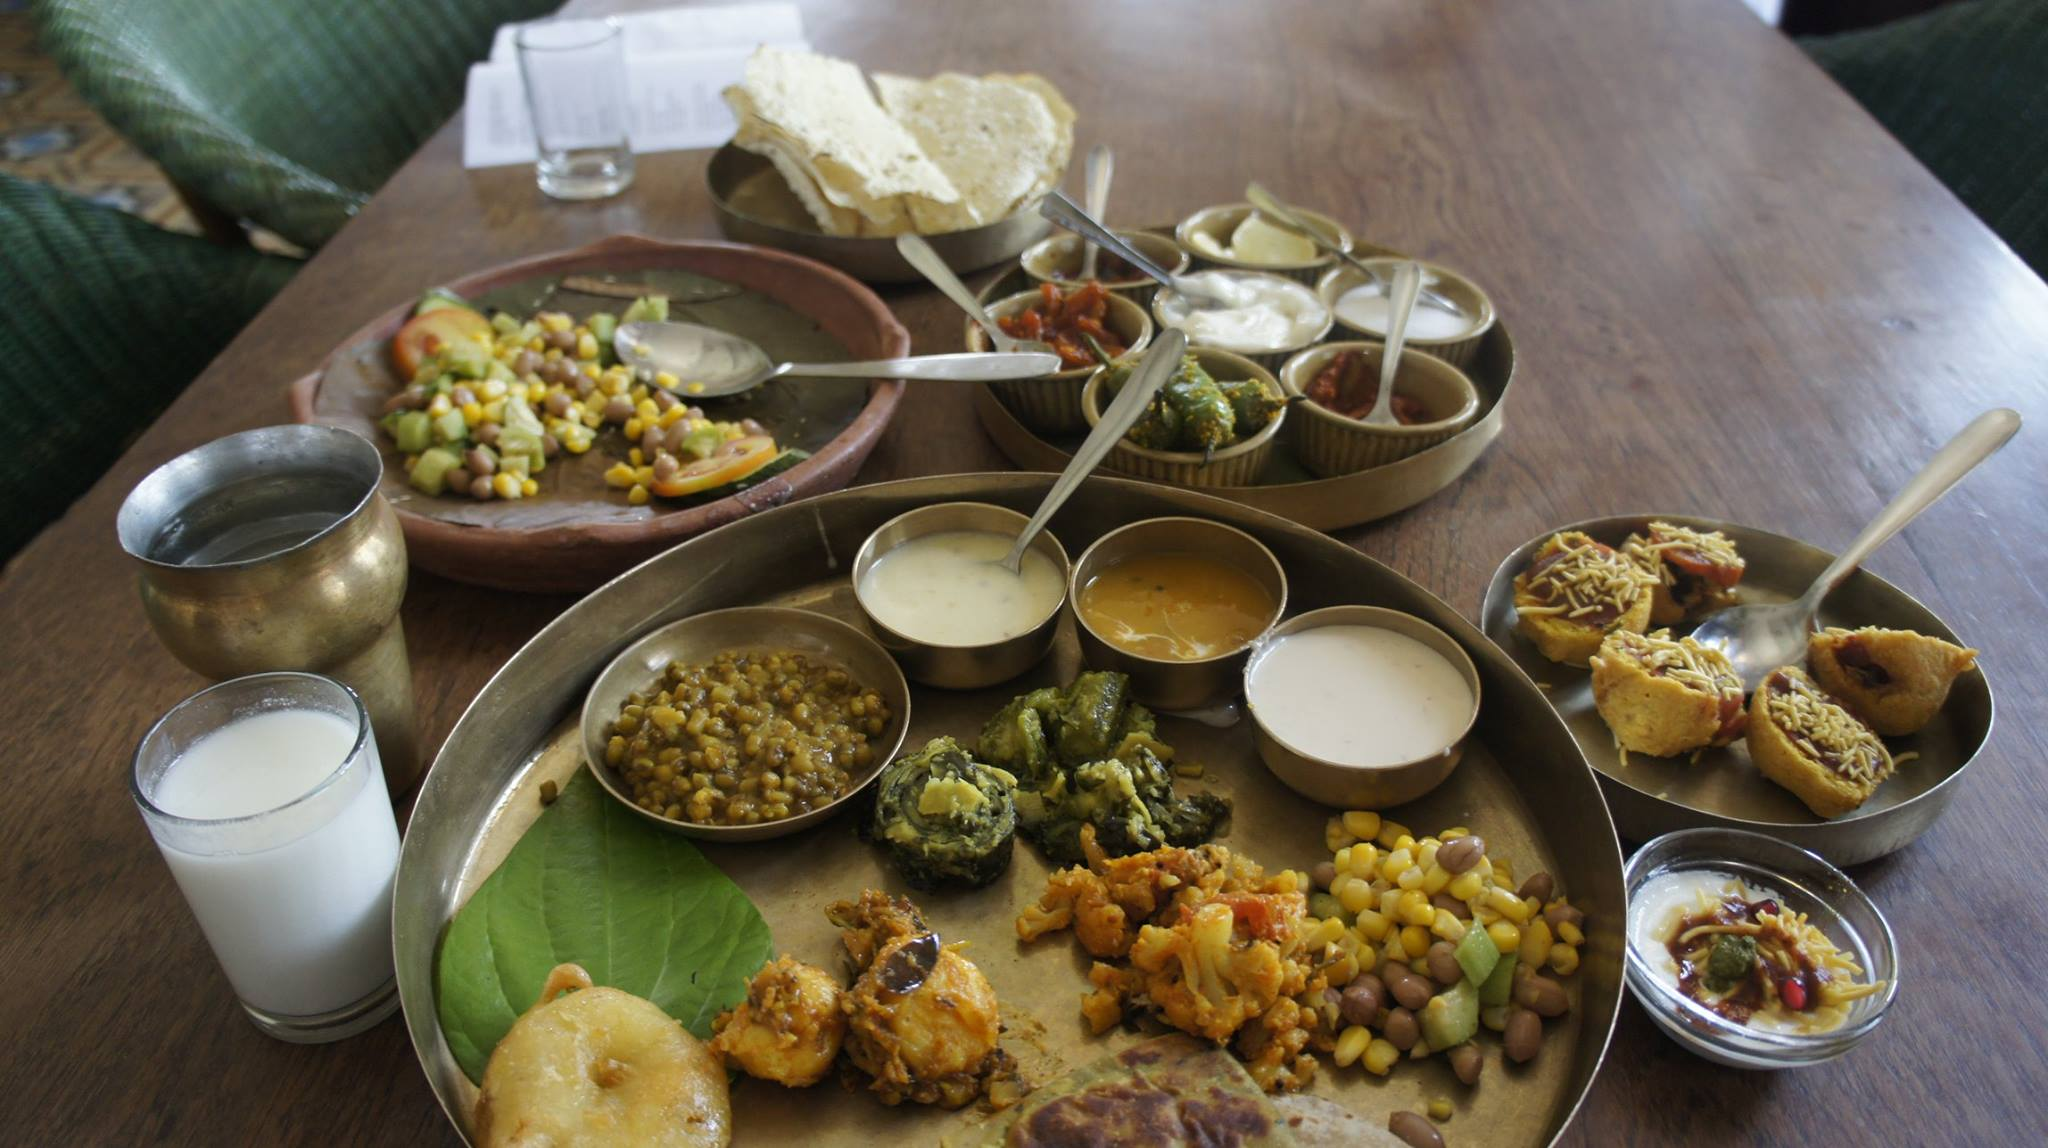 Gujarati thali. Credit: Wikimedia Commons